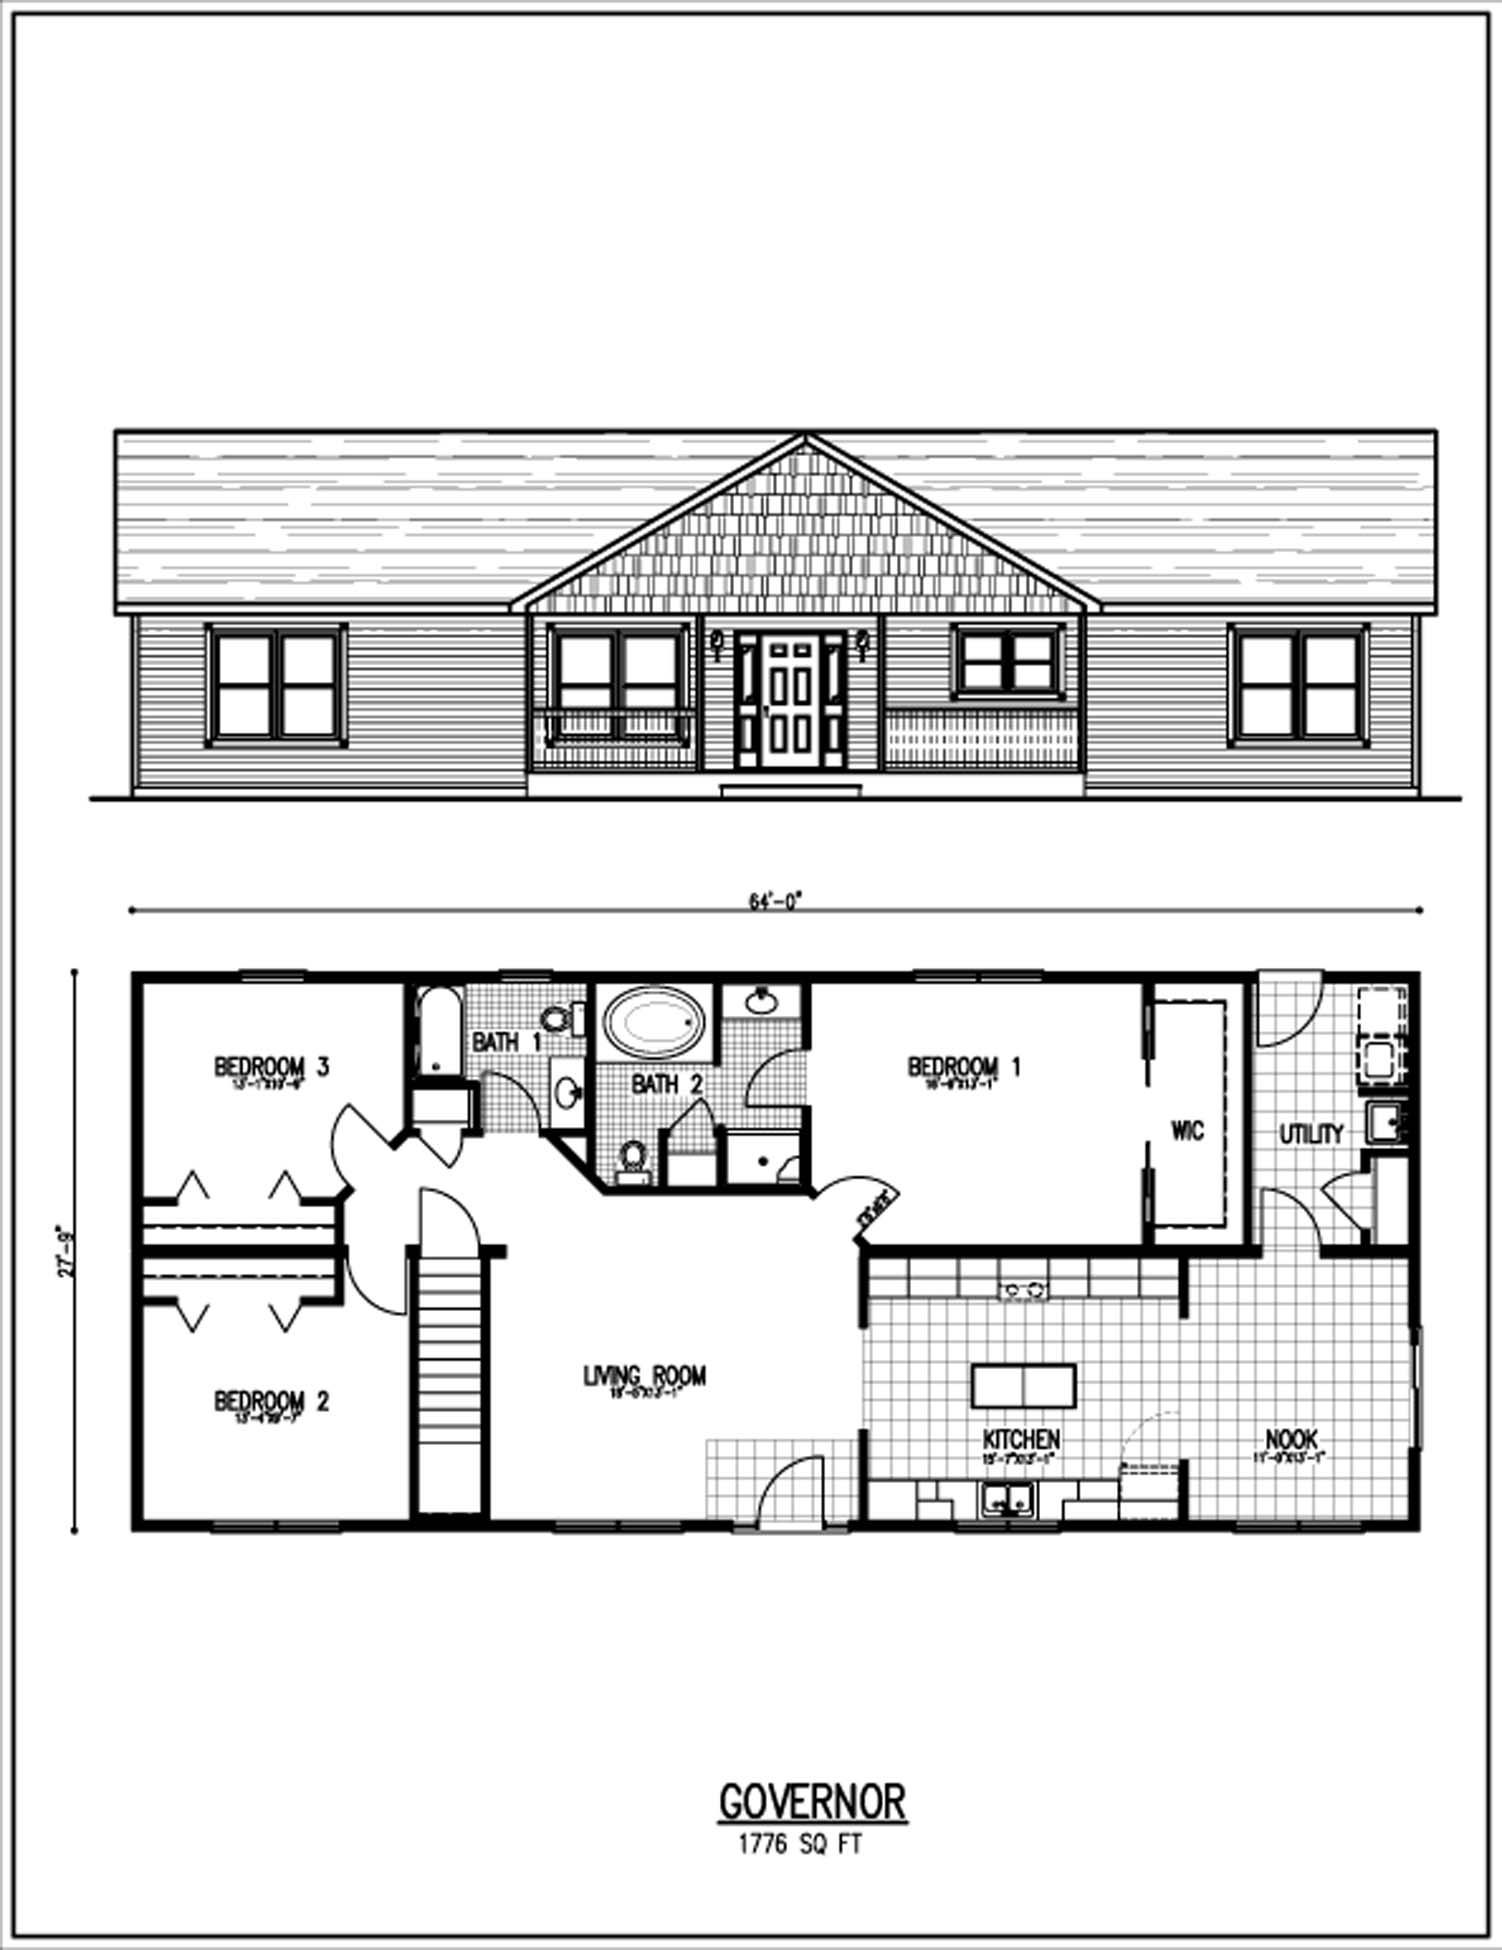 Ranch Style Homes Floor Plans Floor Plans Floor Plans Ranch